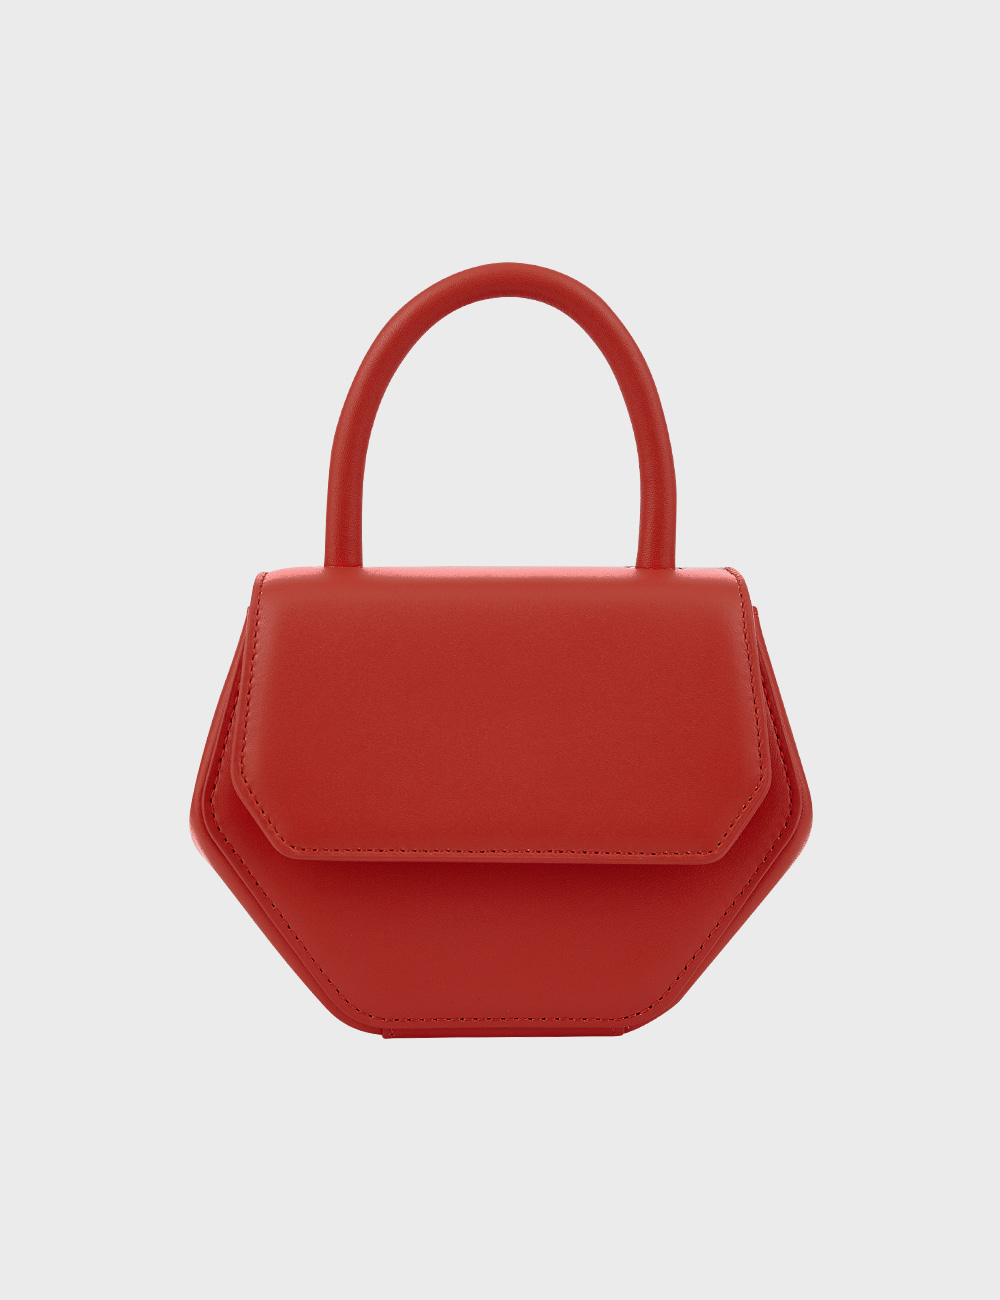 MAISON246,[김지인 착용] 246 MAGOT SMALL BAG - RED,No.246